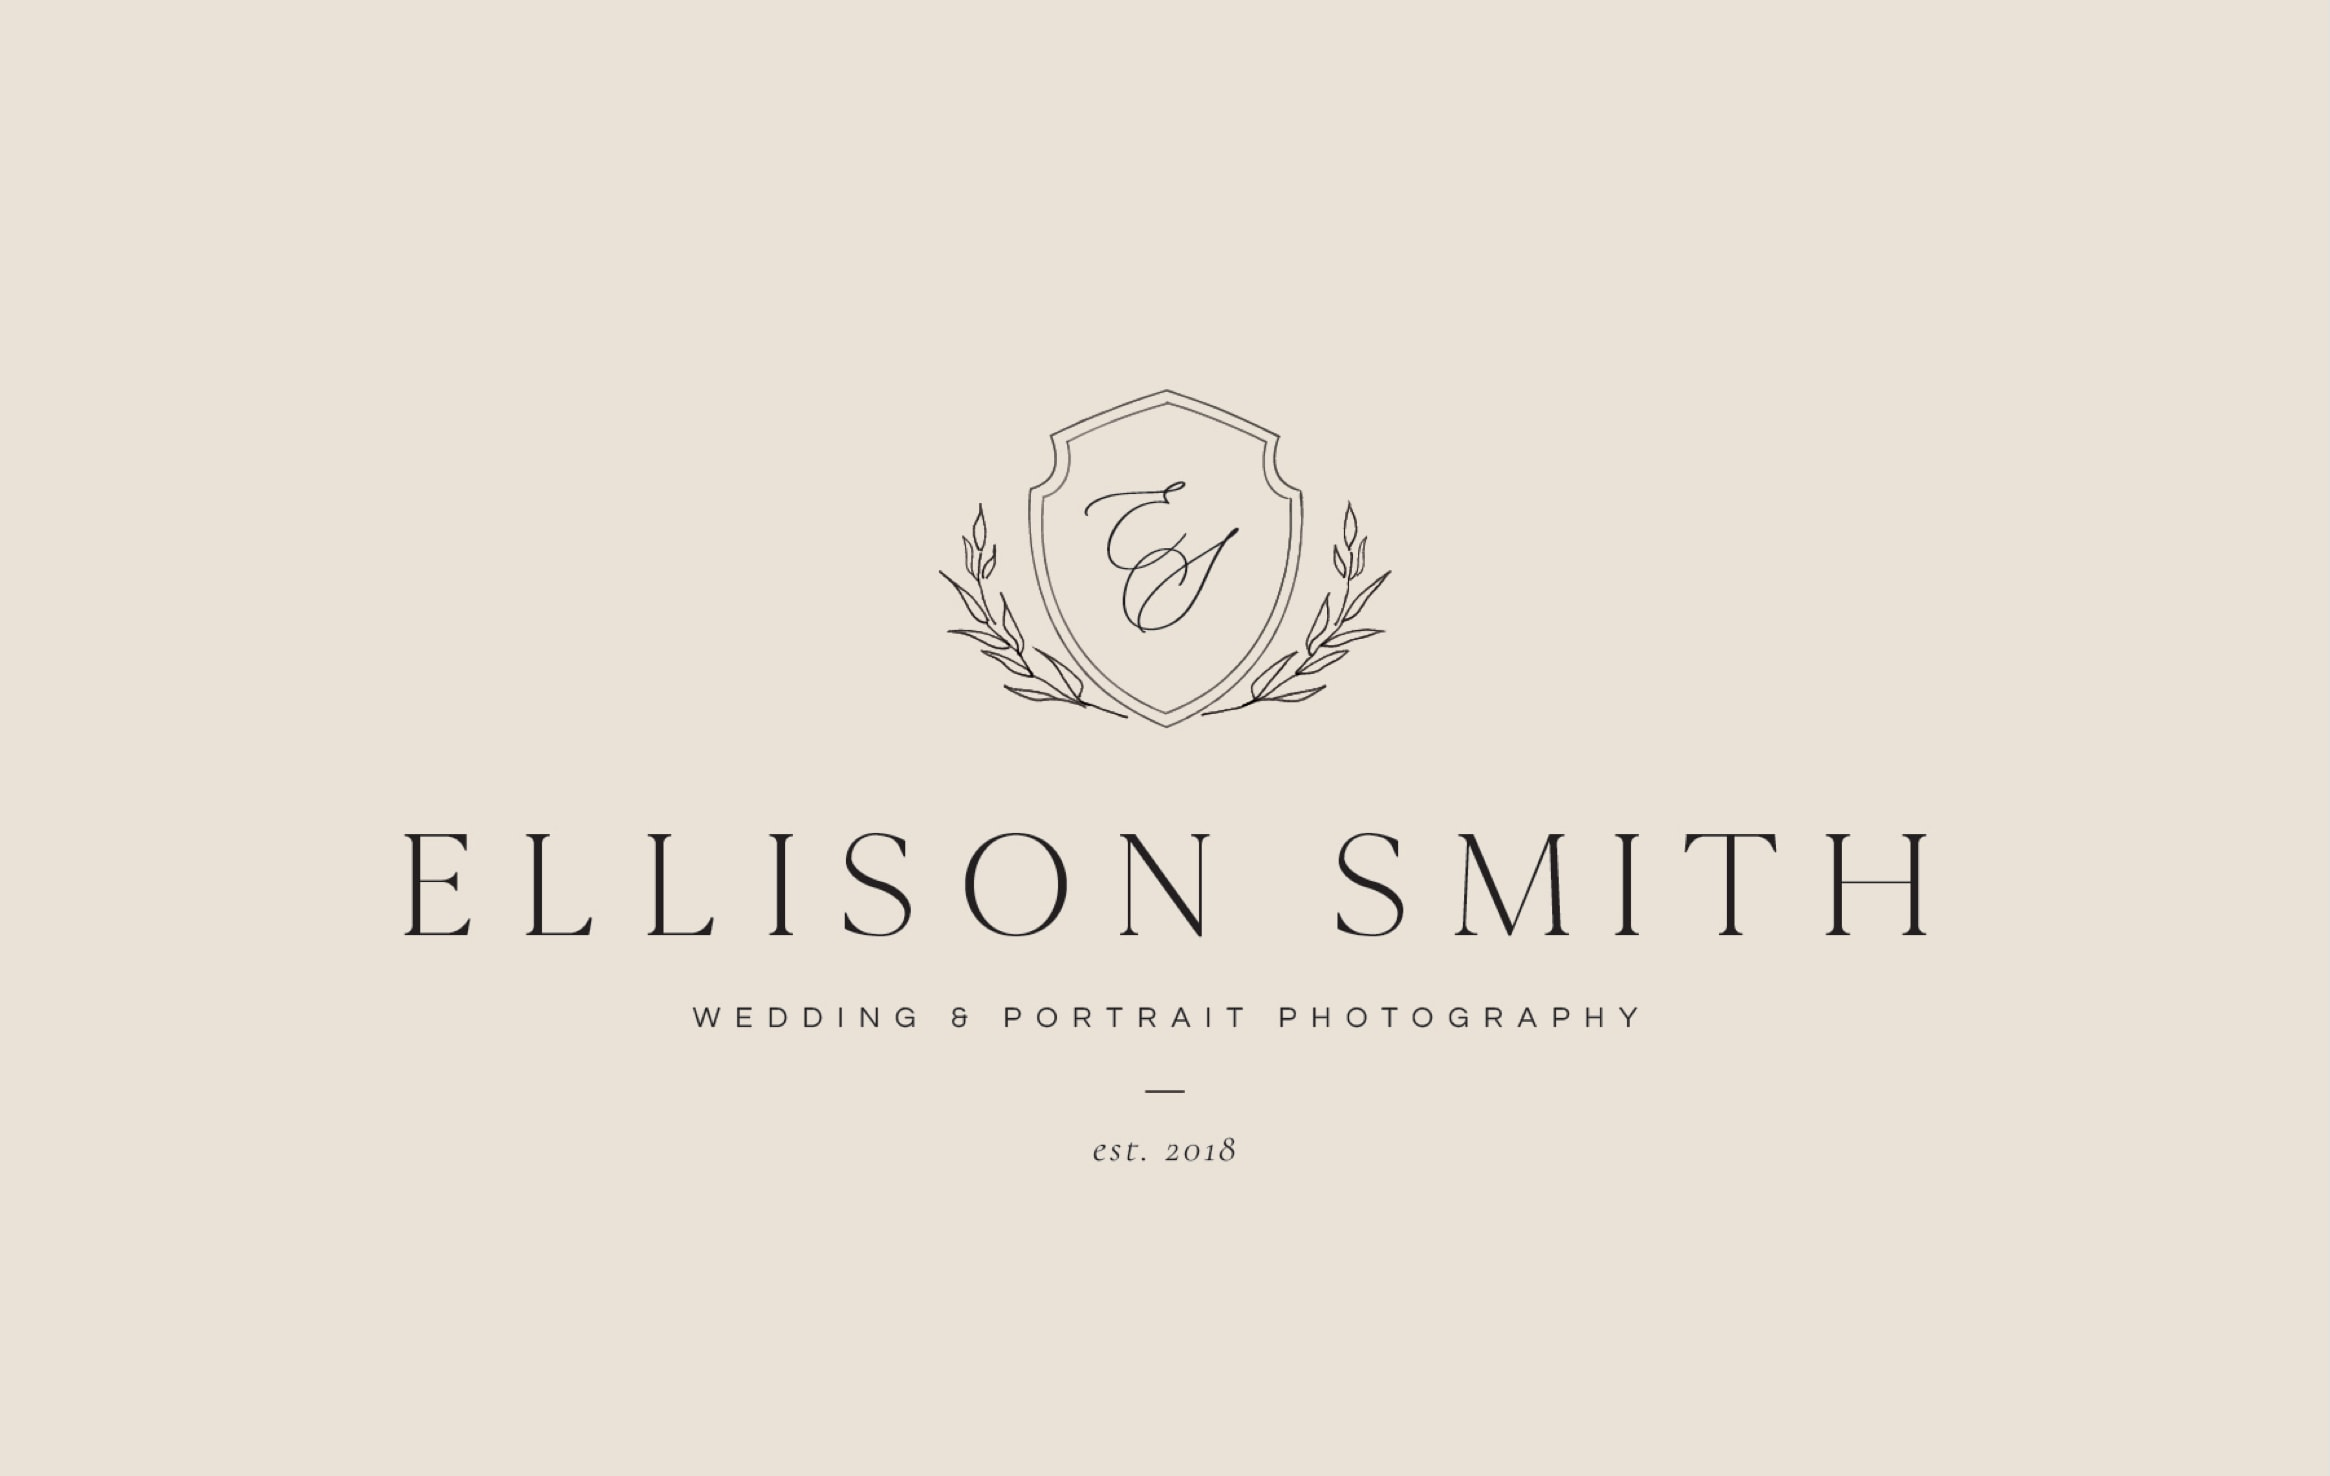 Semi-Custom Brand: Ellison Smith